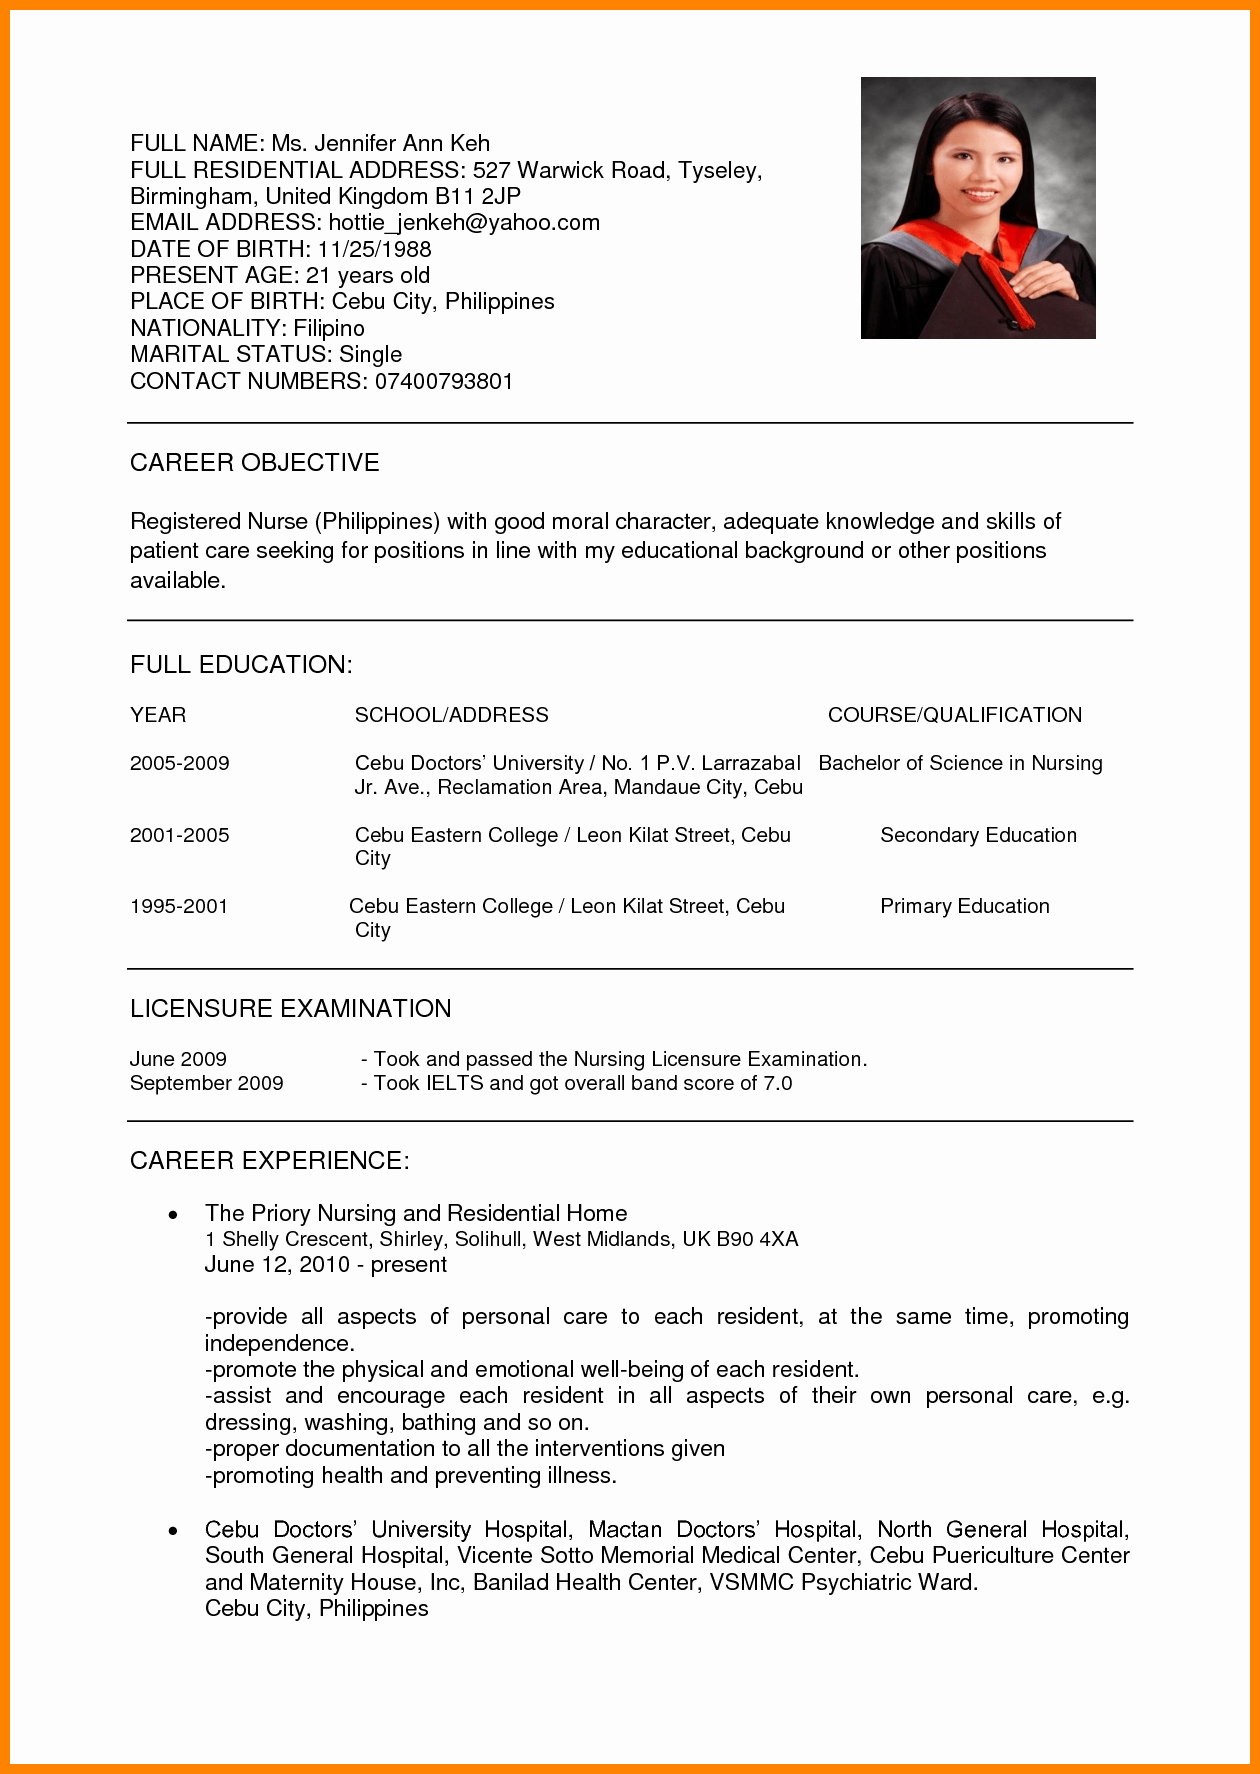 Curriculum Vitae for Nurses Awesome 13 Curriculum Vitae Examples for Nurses